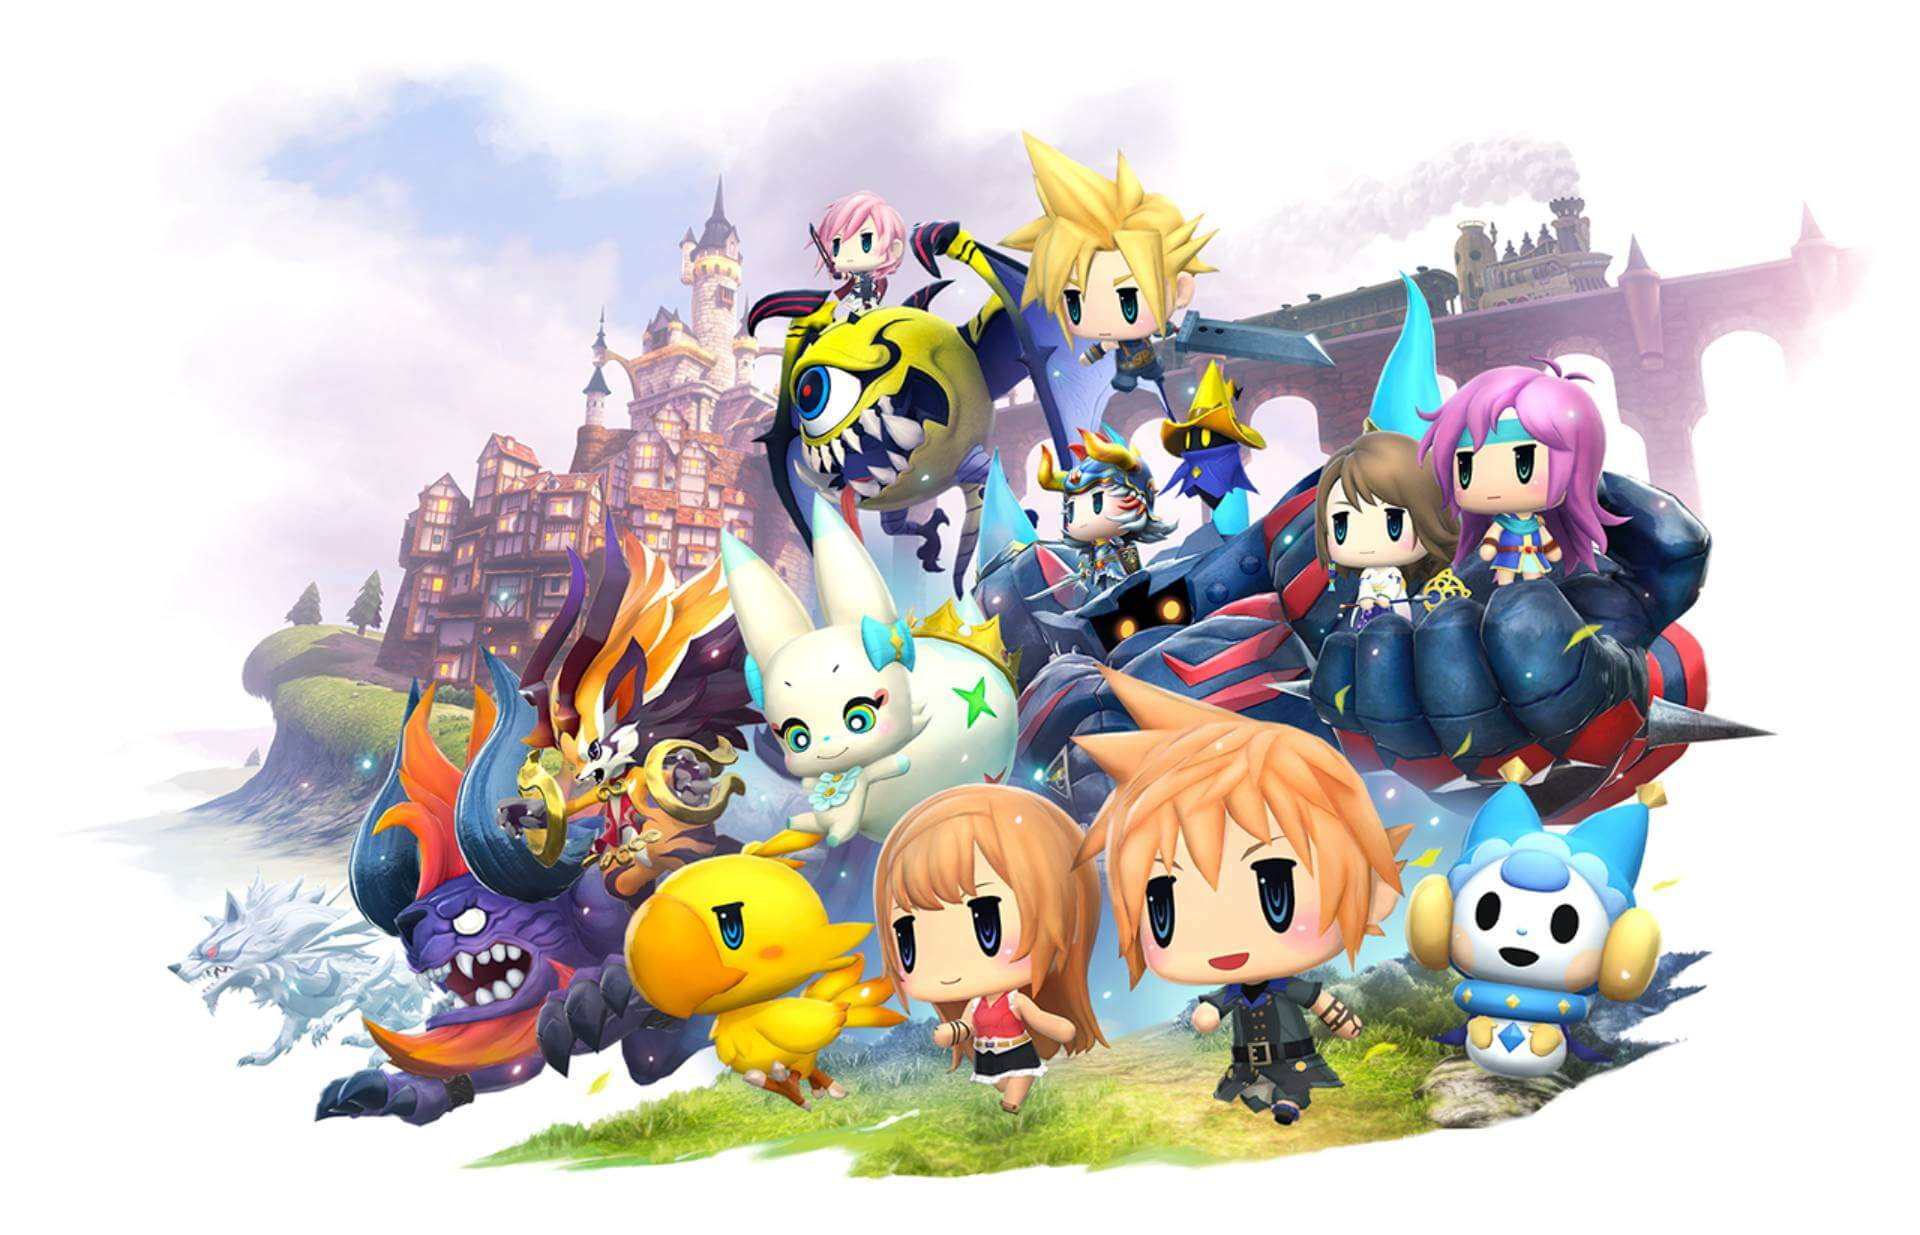 World of Final Fantasy Demo Out Next Week